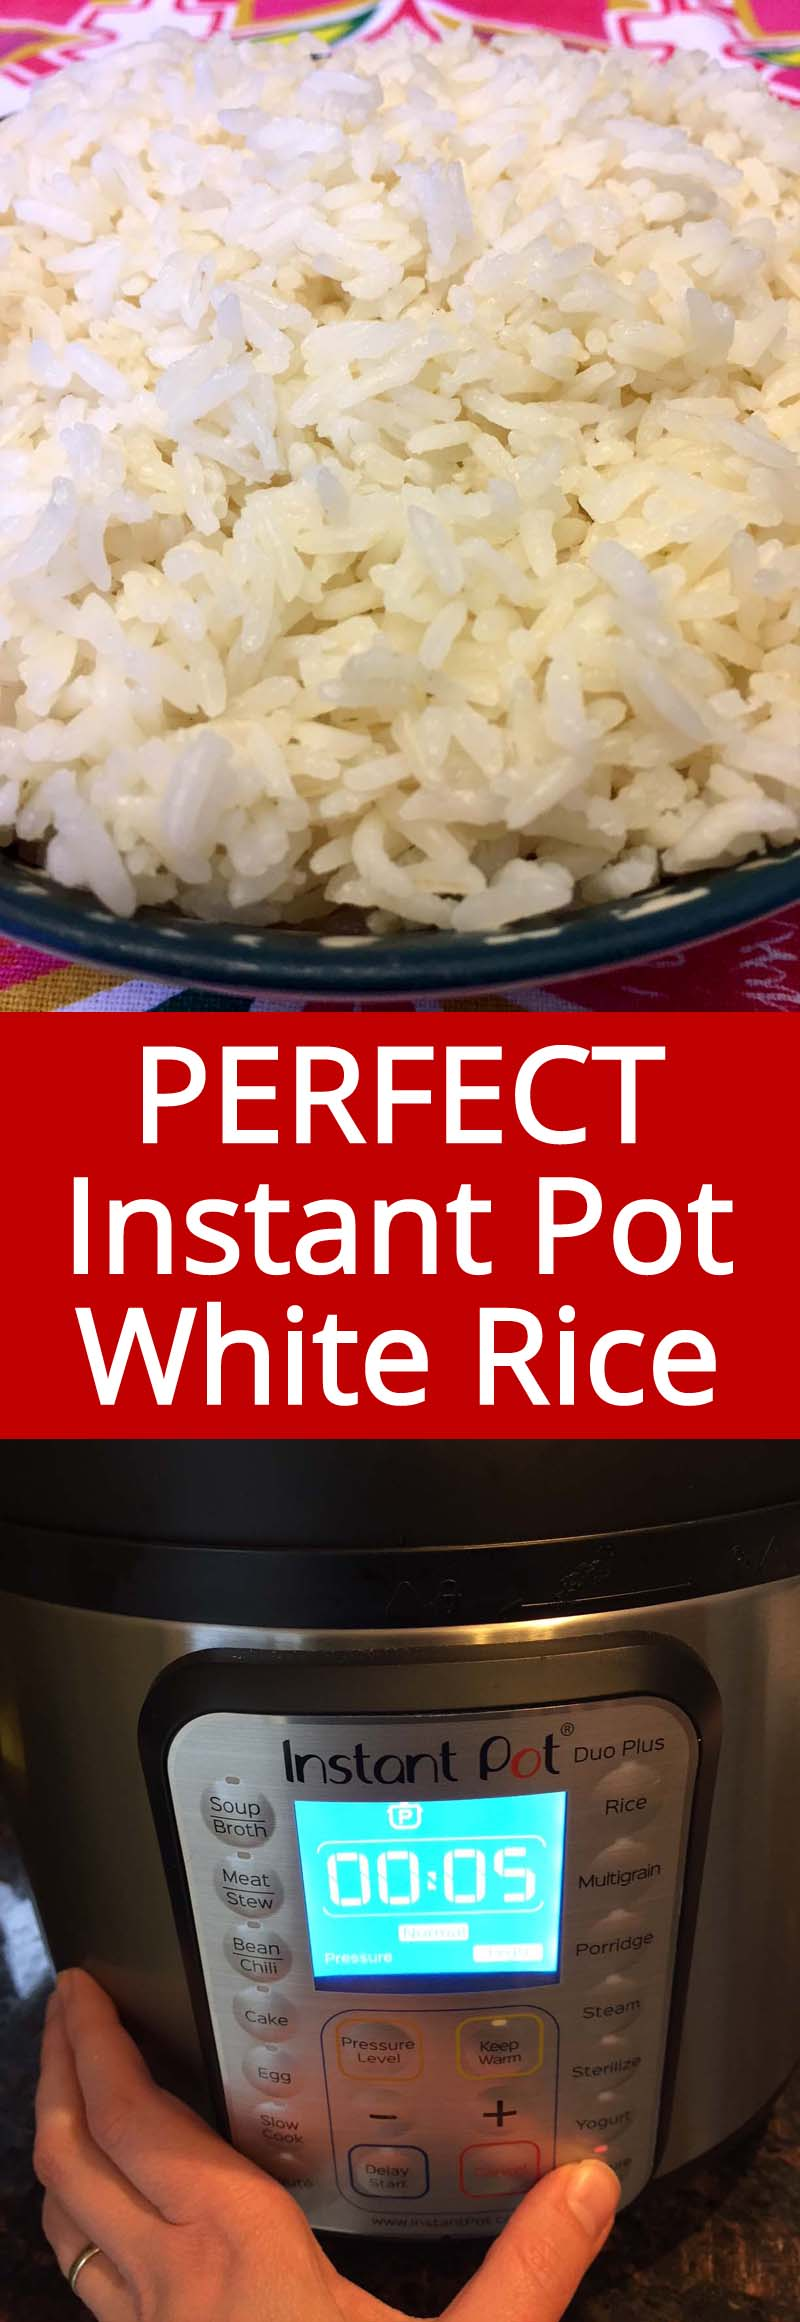 Instant Pot rice turns out perfect every time! Time to throw out my rice cooker!